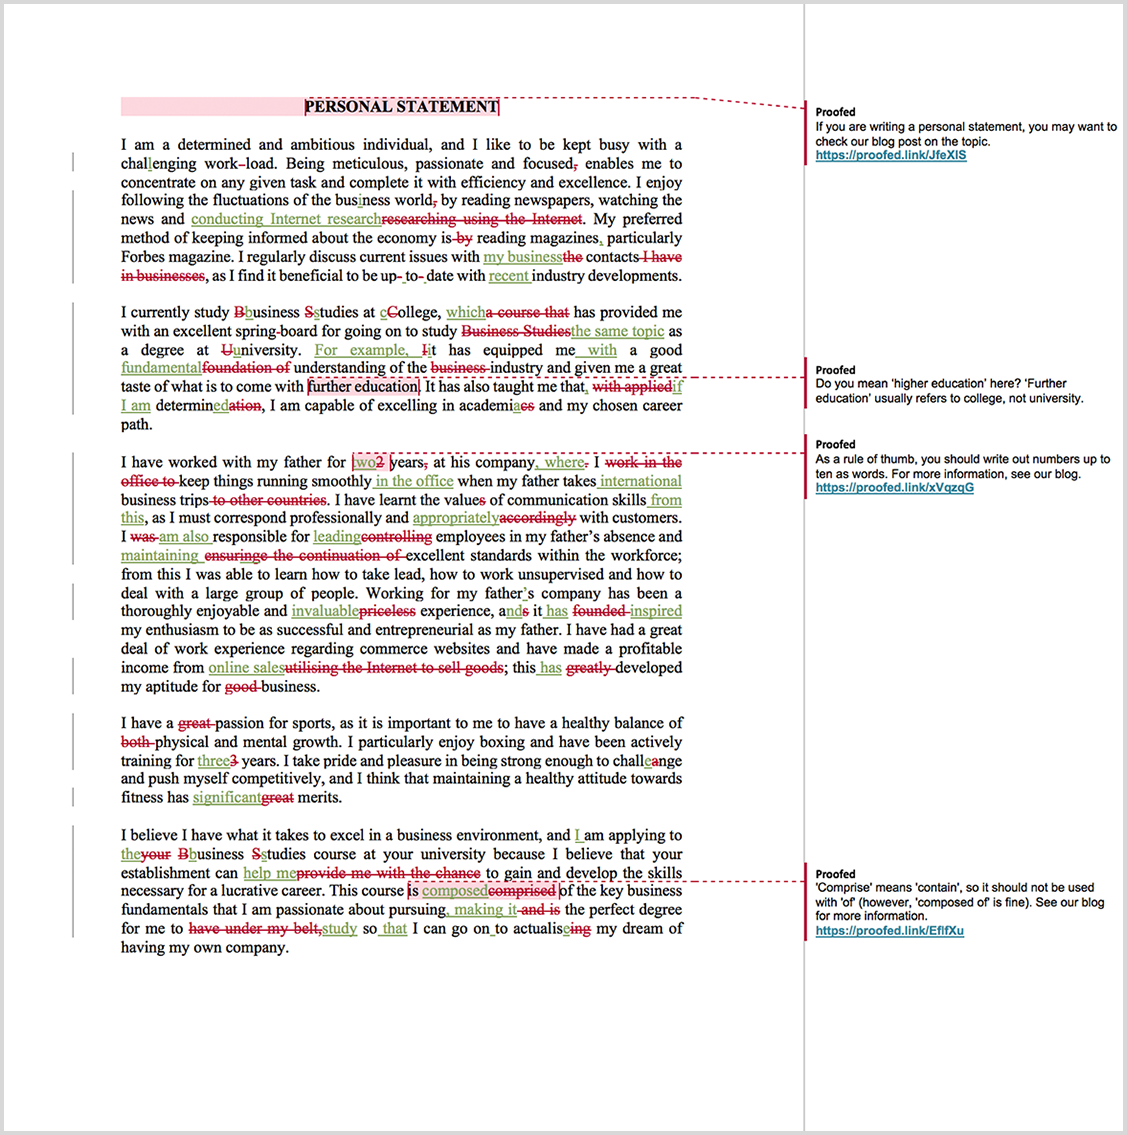 Personal Statement Proofreading Example (After Editing)